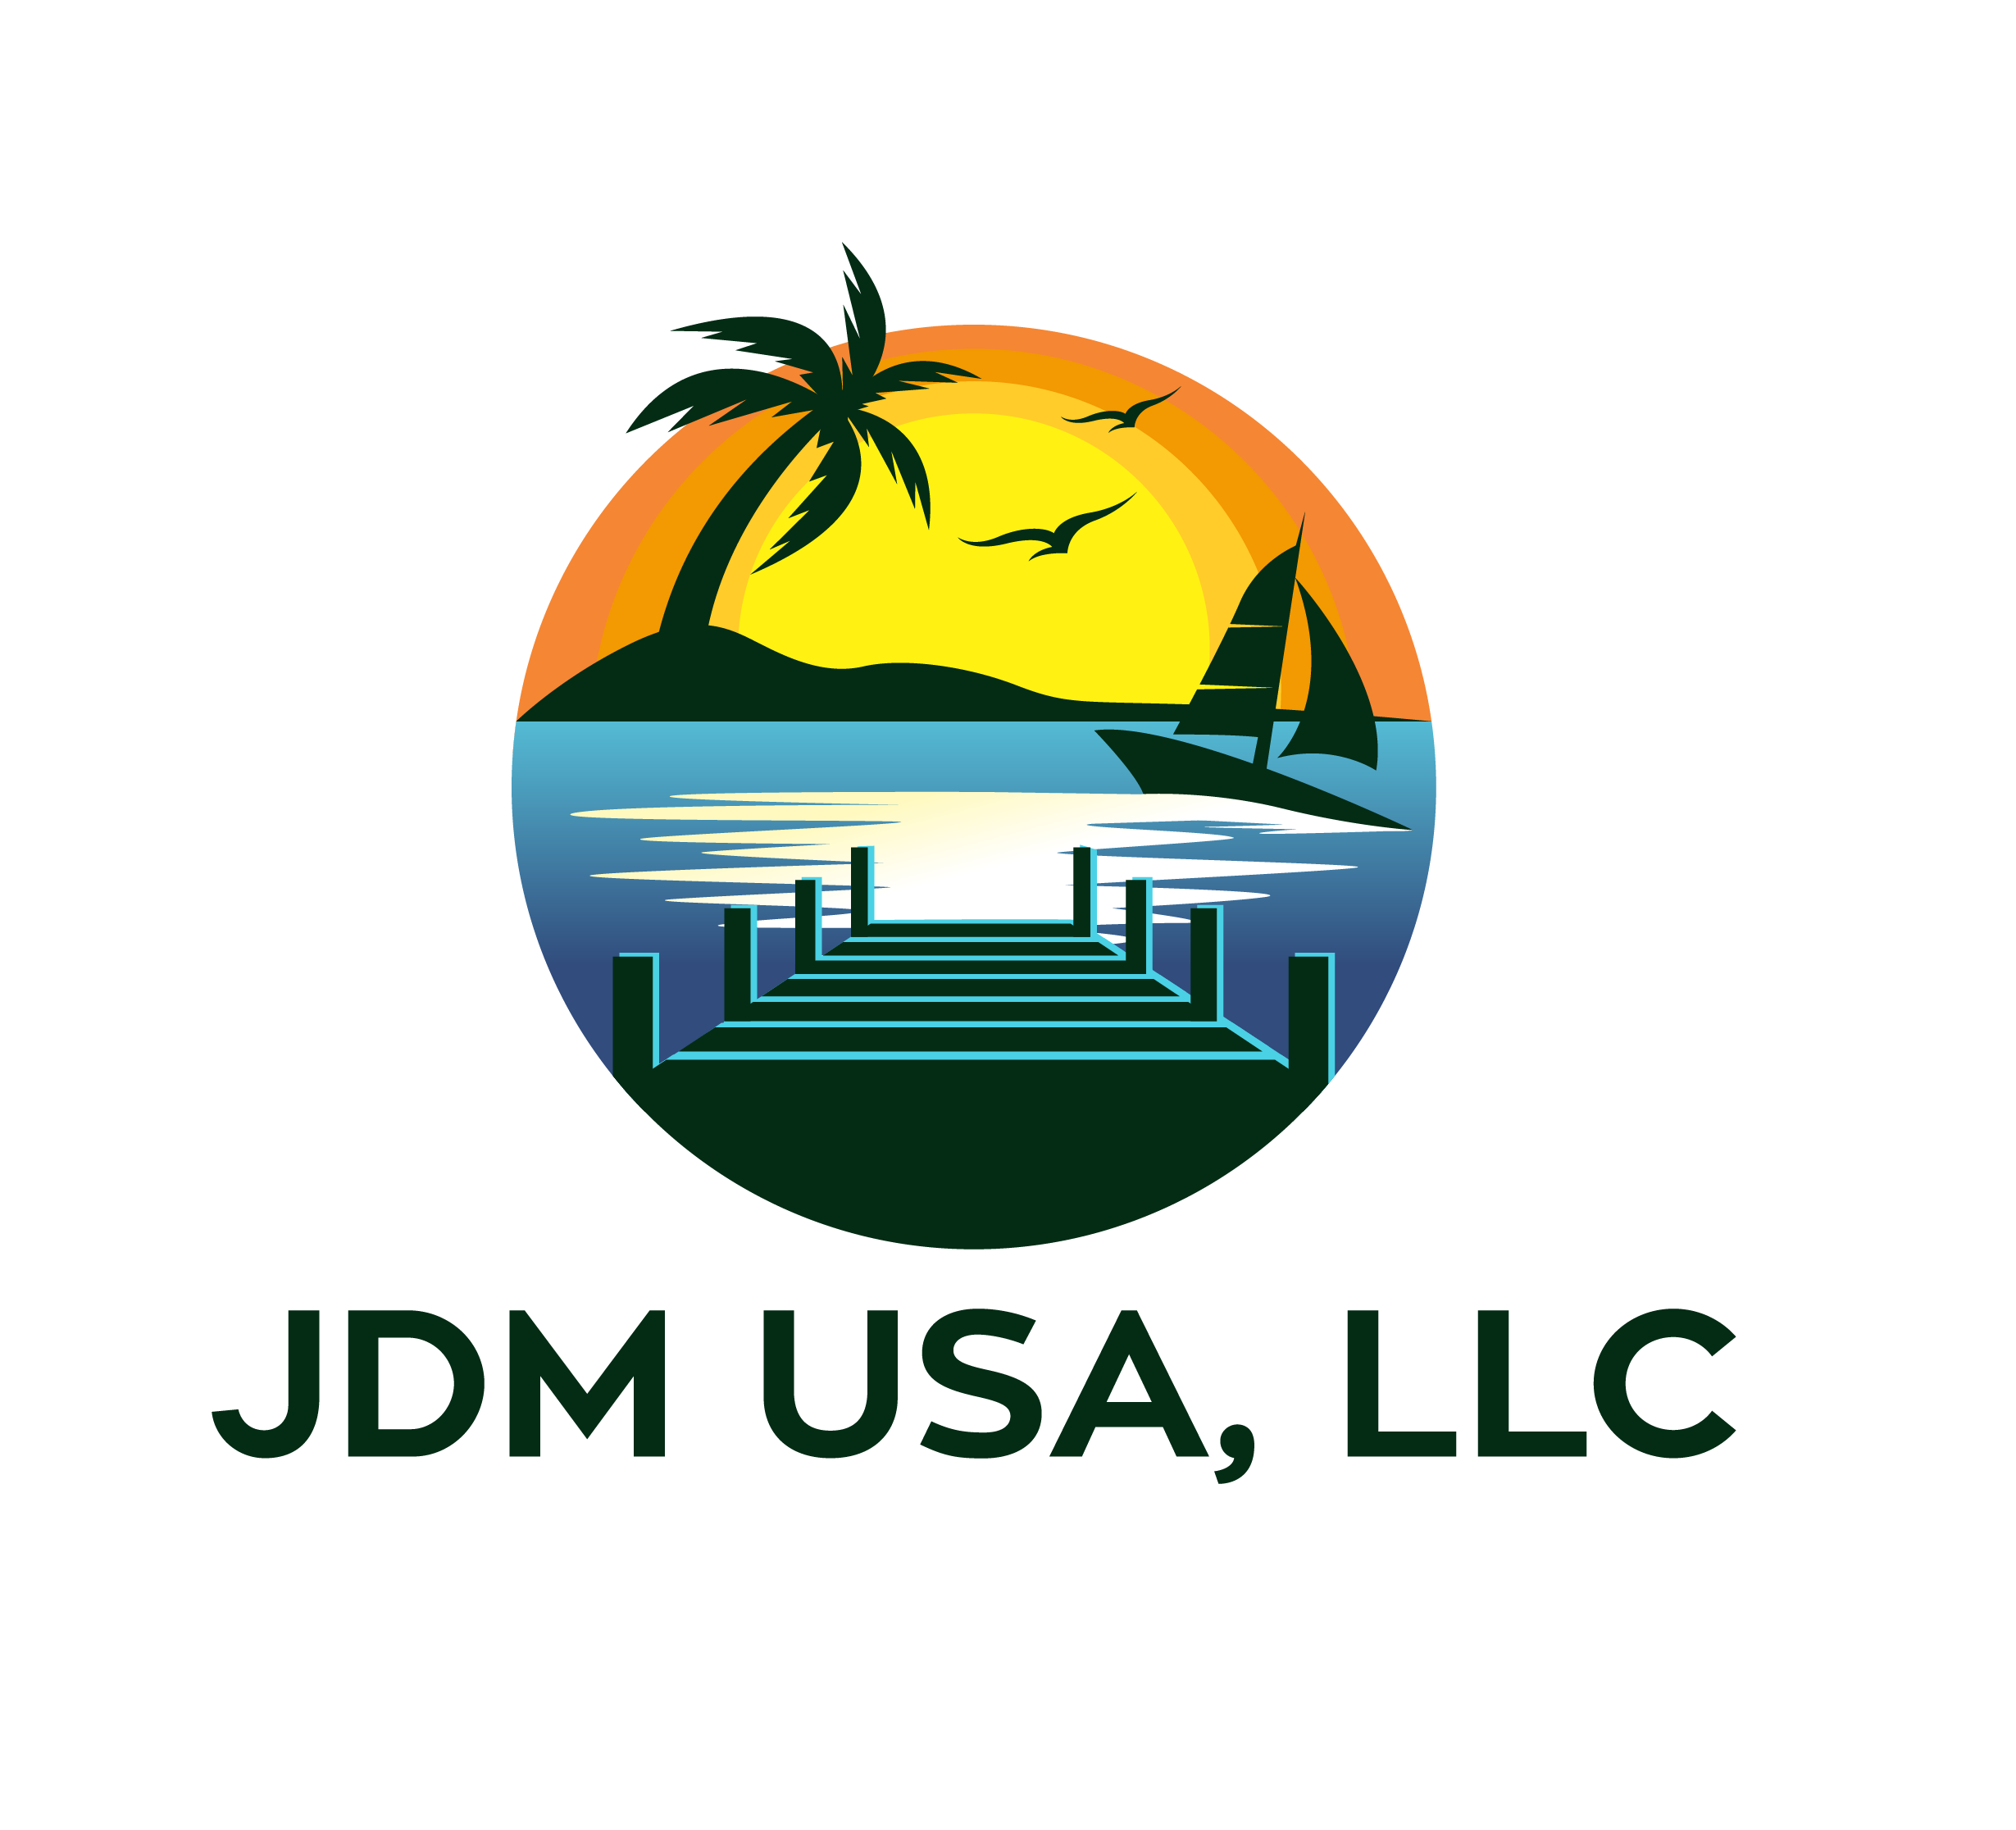 We need a logo for a Sales and Consulting company: Boat Dock, Marine and Construction business.